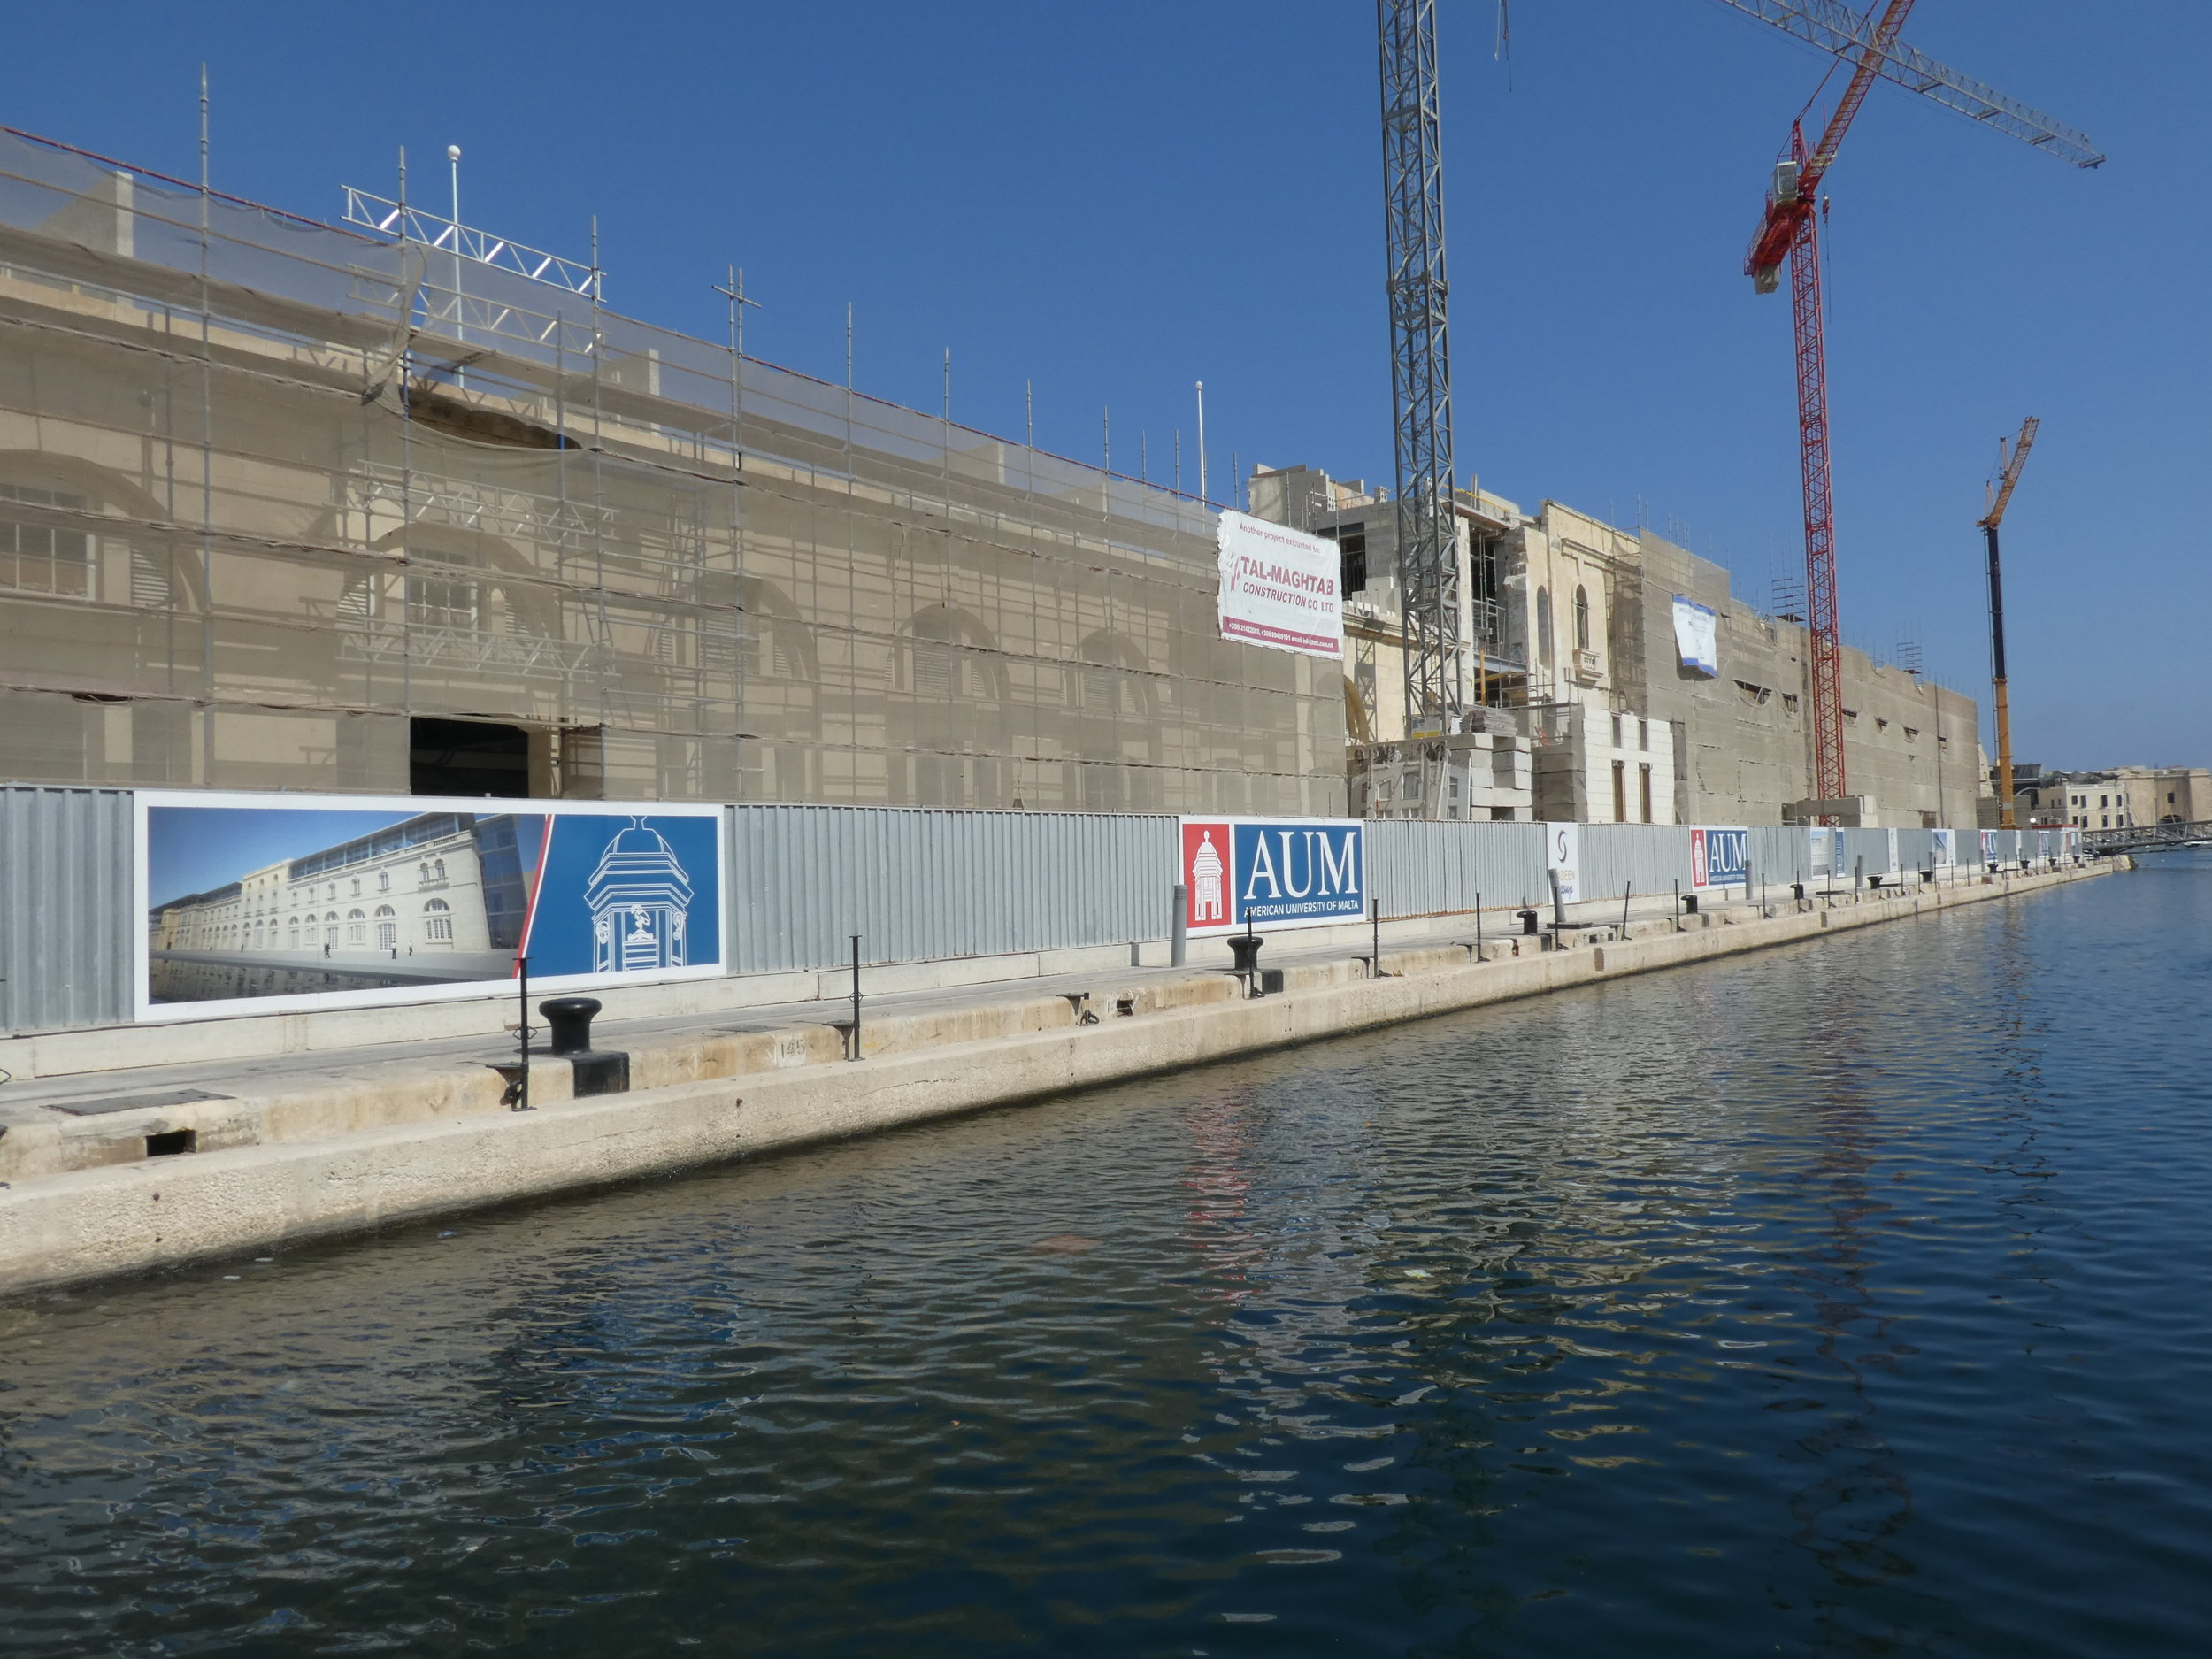 The construction site of Cospicua's Dock number one, which will become one of the campuses of the American University of Malta.